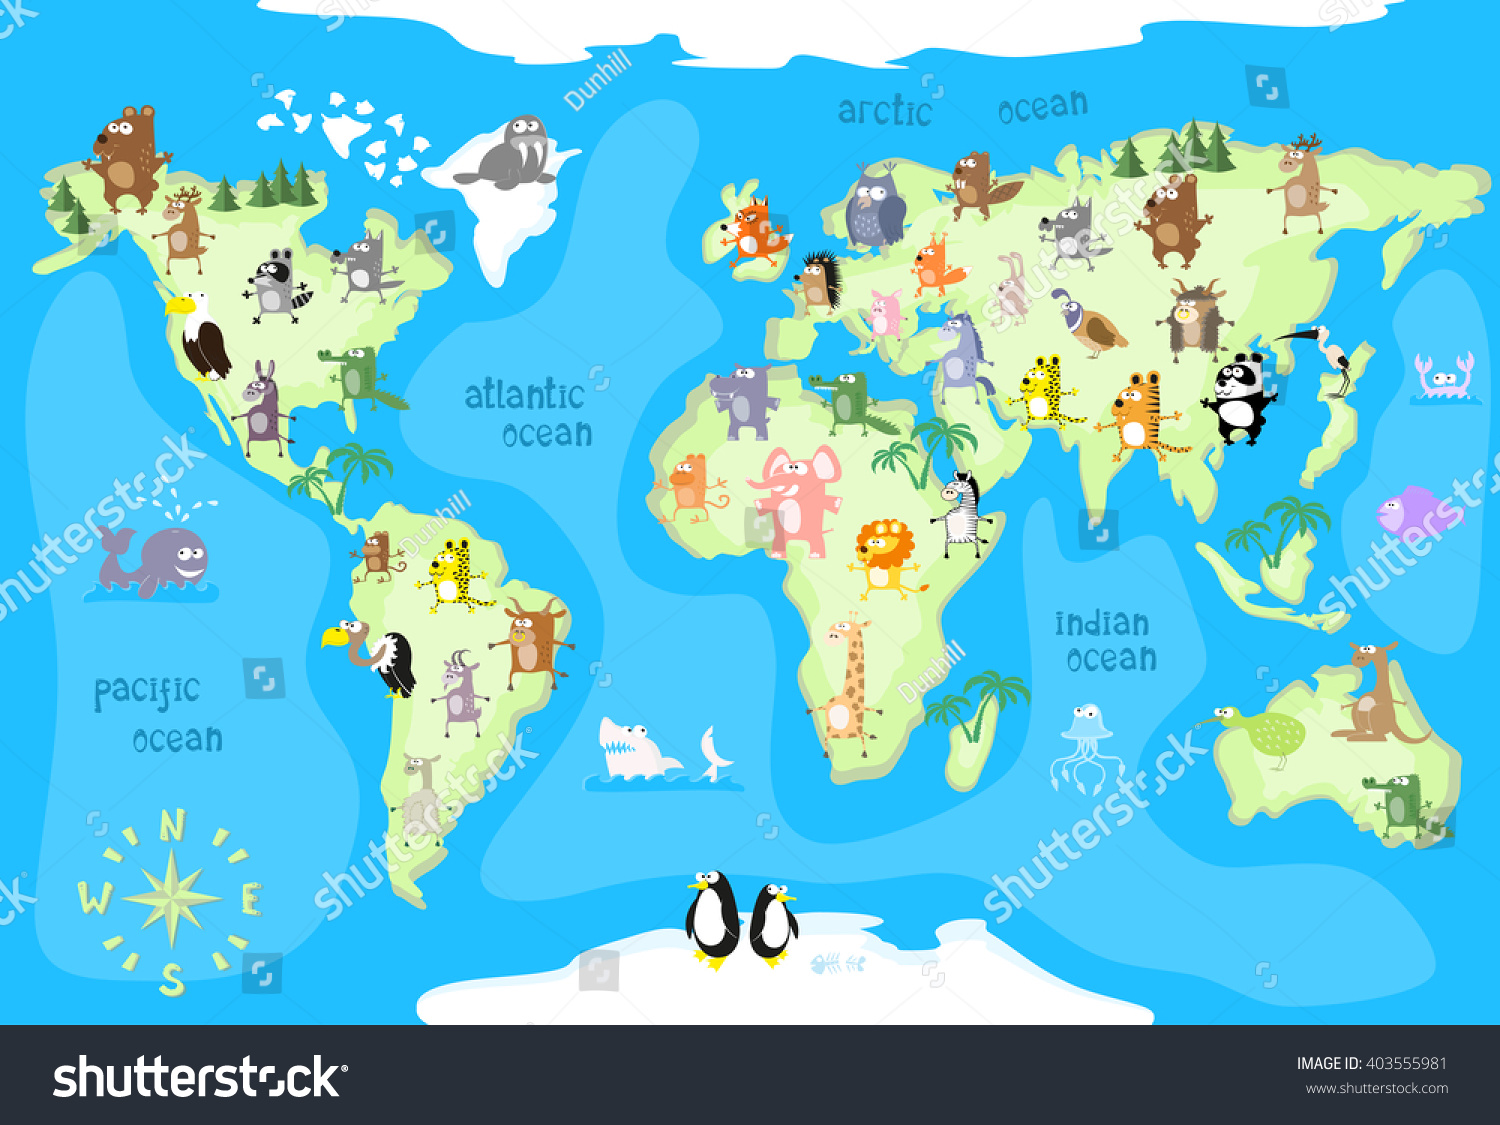 World Map With Animals Vector Illustration In Cartoon Style stock ...